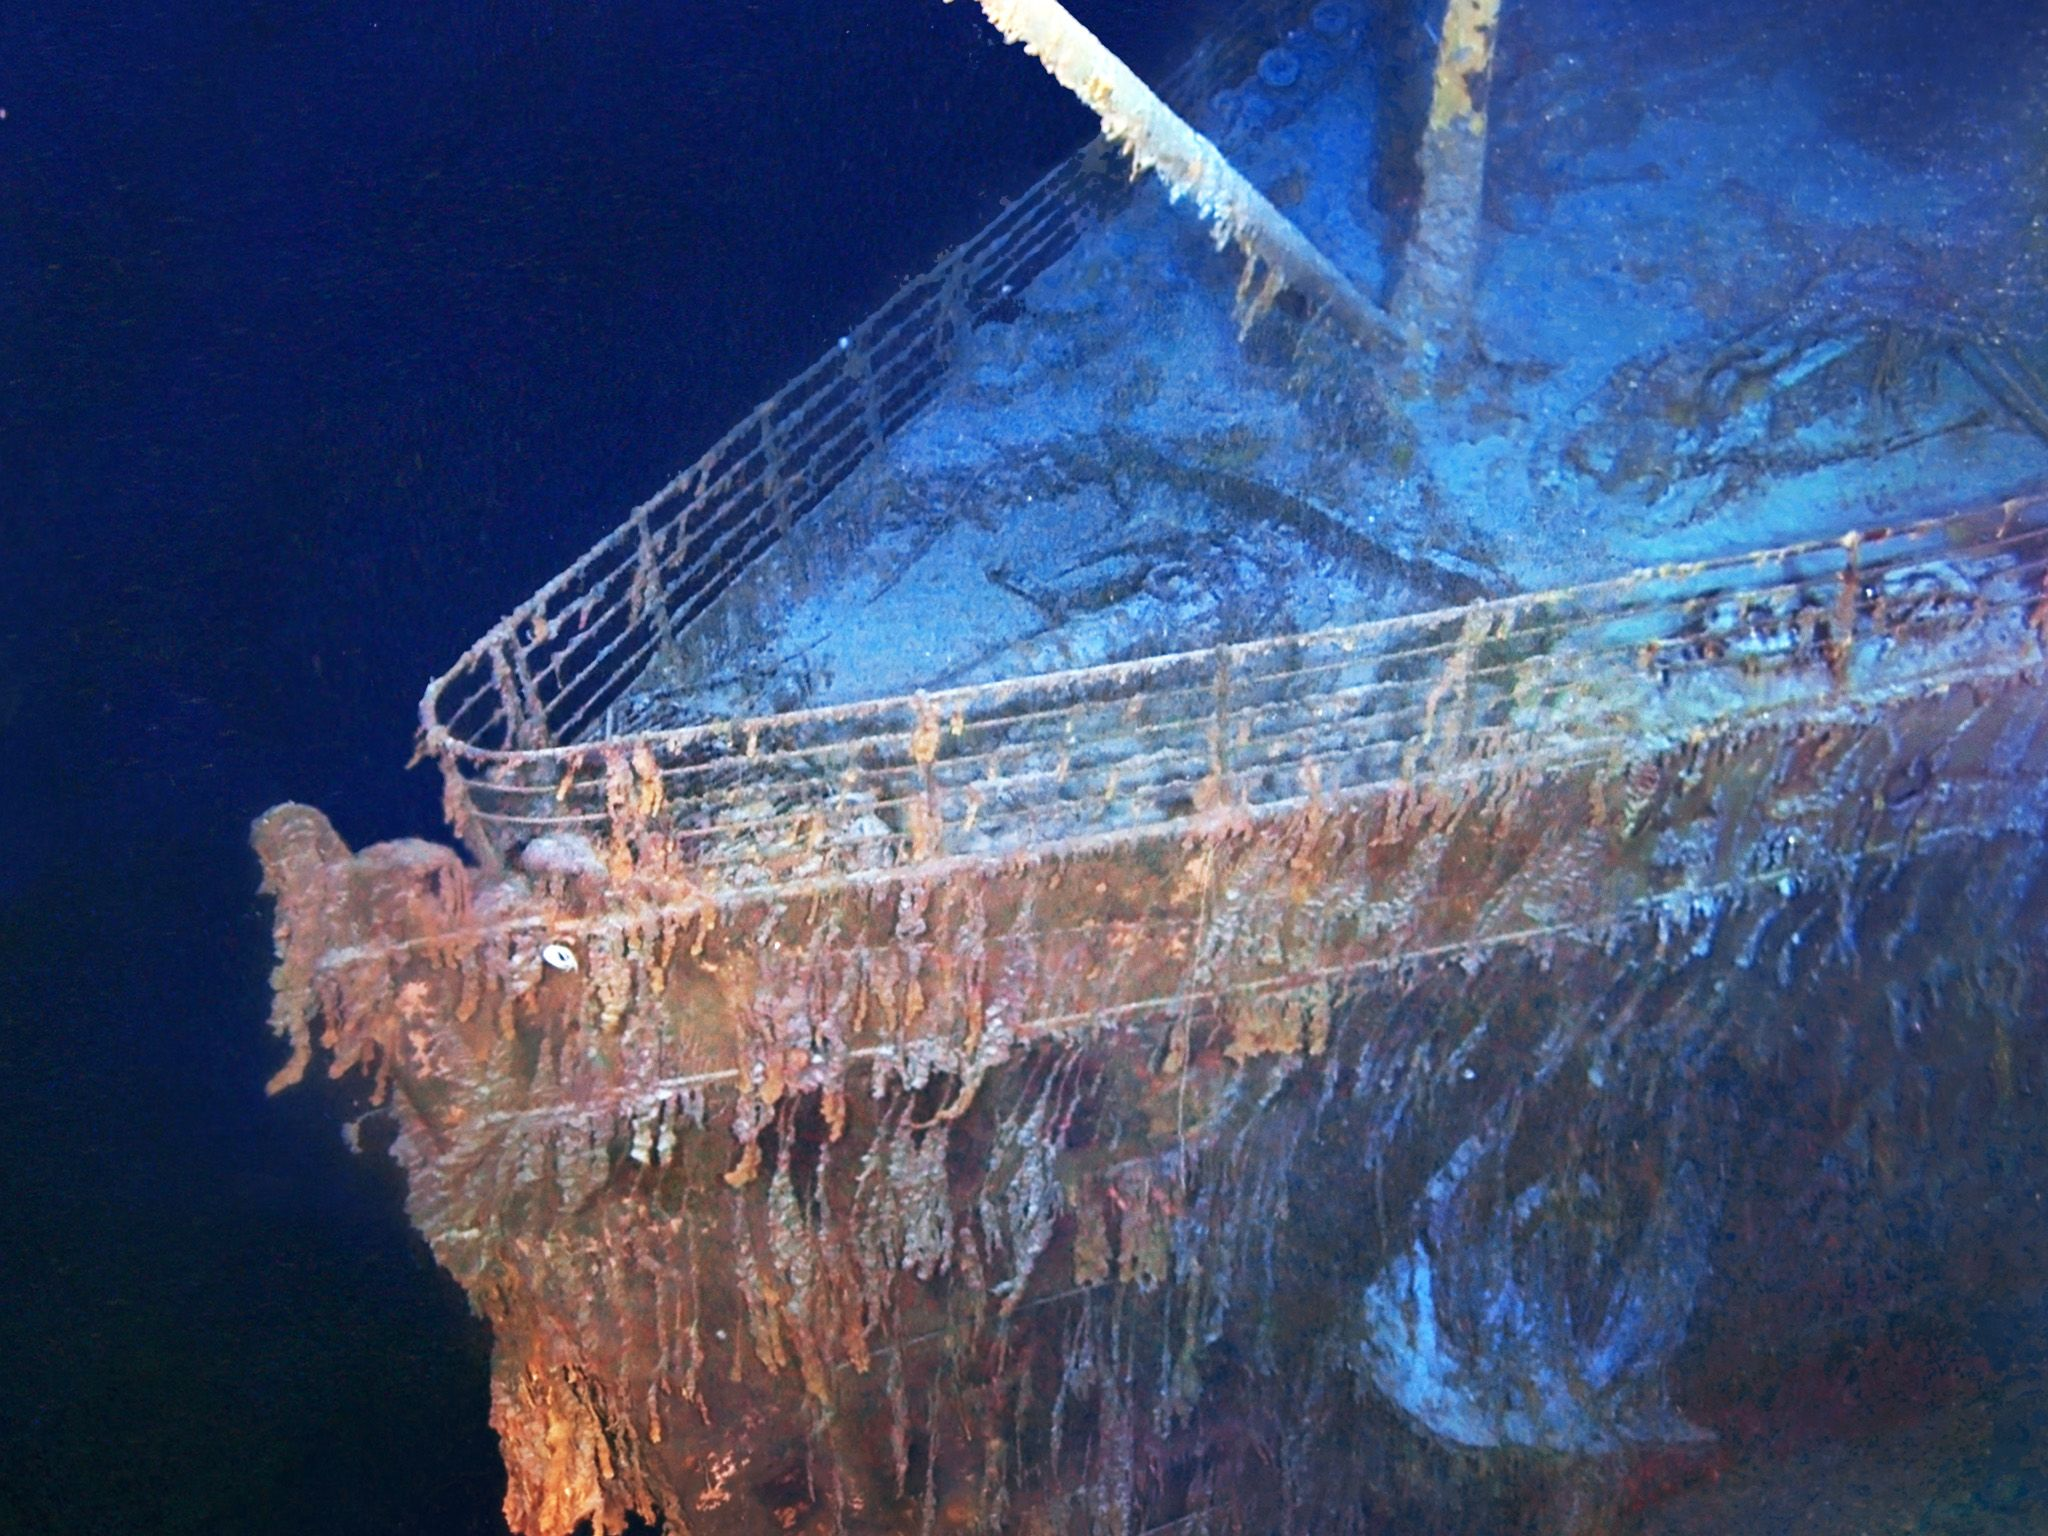 Photo mosaics of Titanic wreckage. The bow of the Titanic ship wreck. This image is from Drain... [Photo of the day - می 2015]